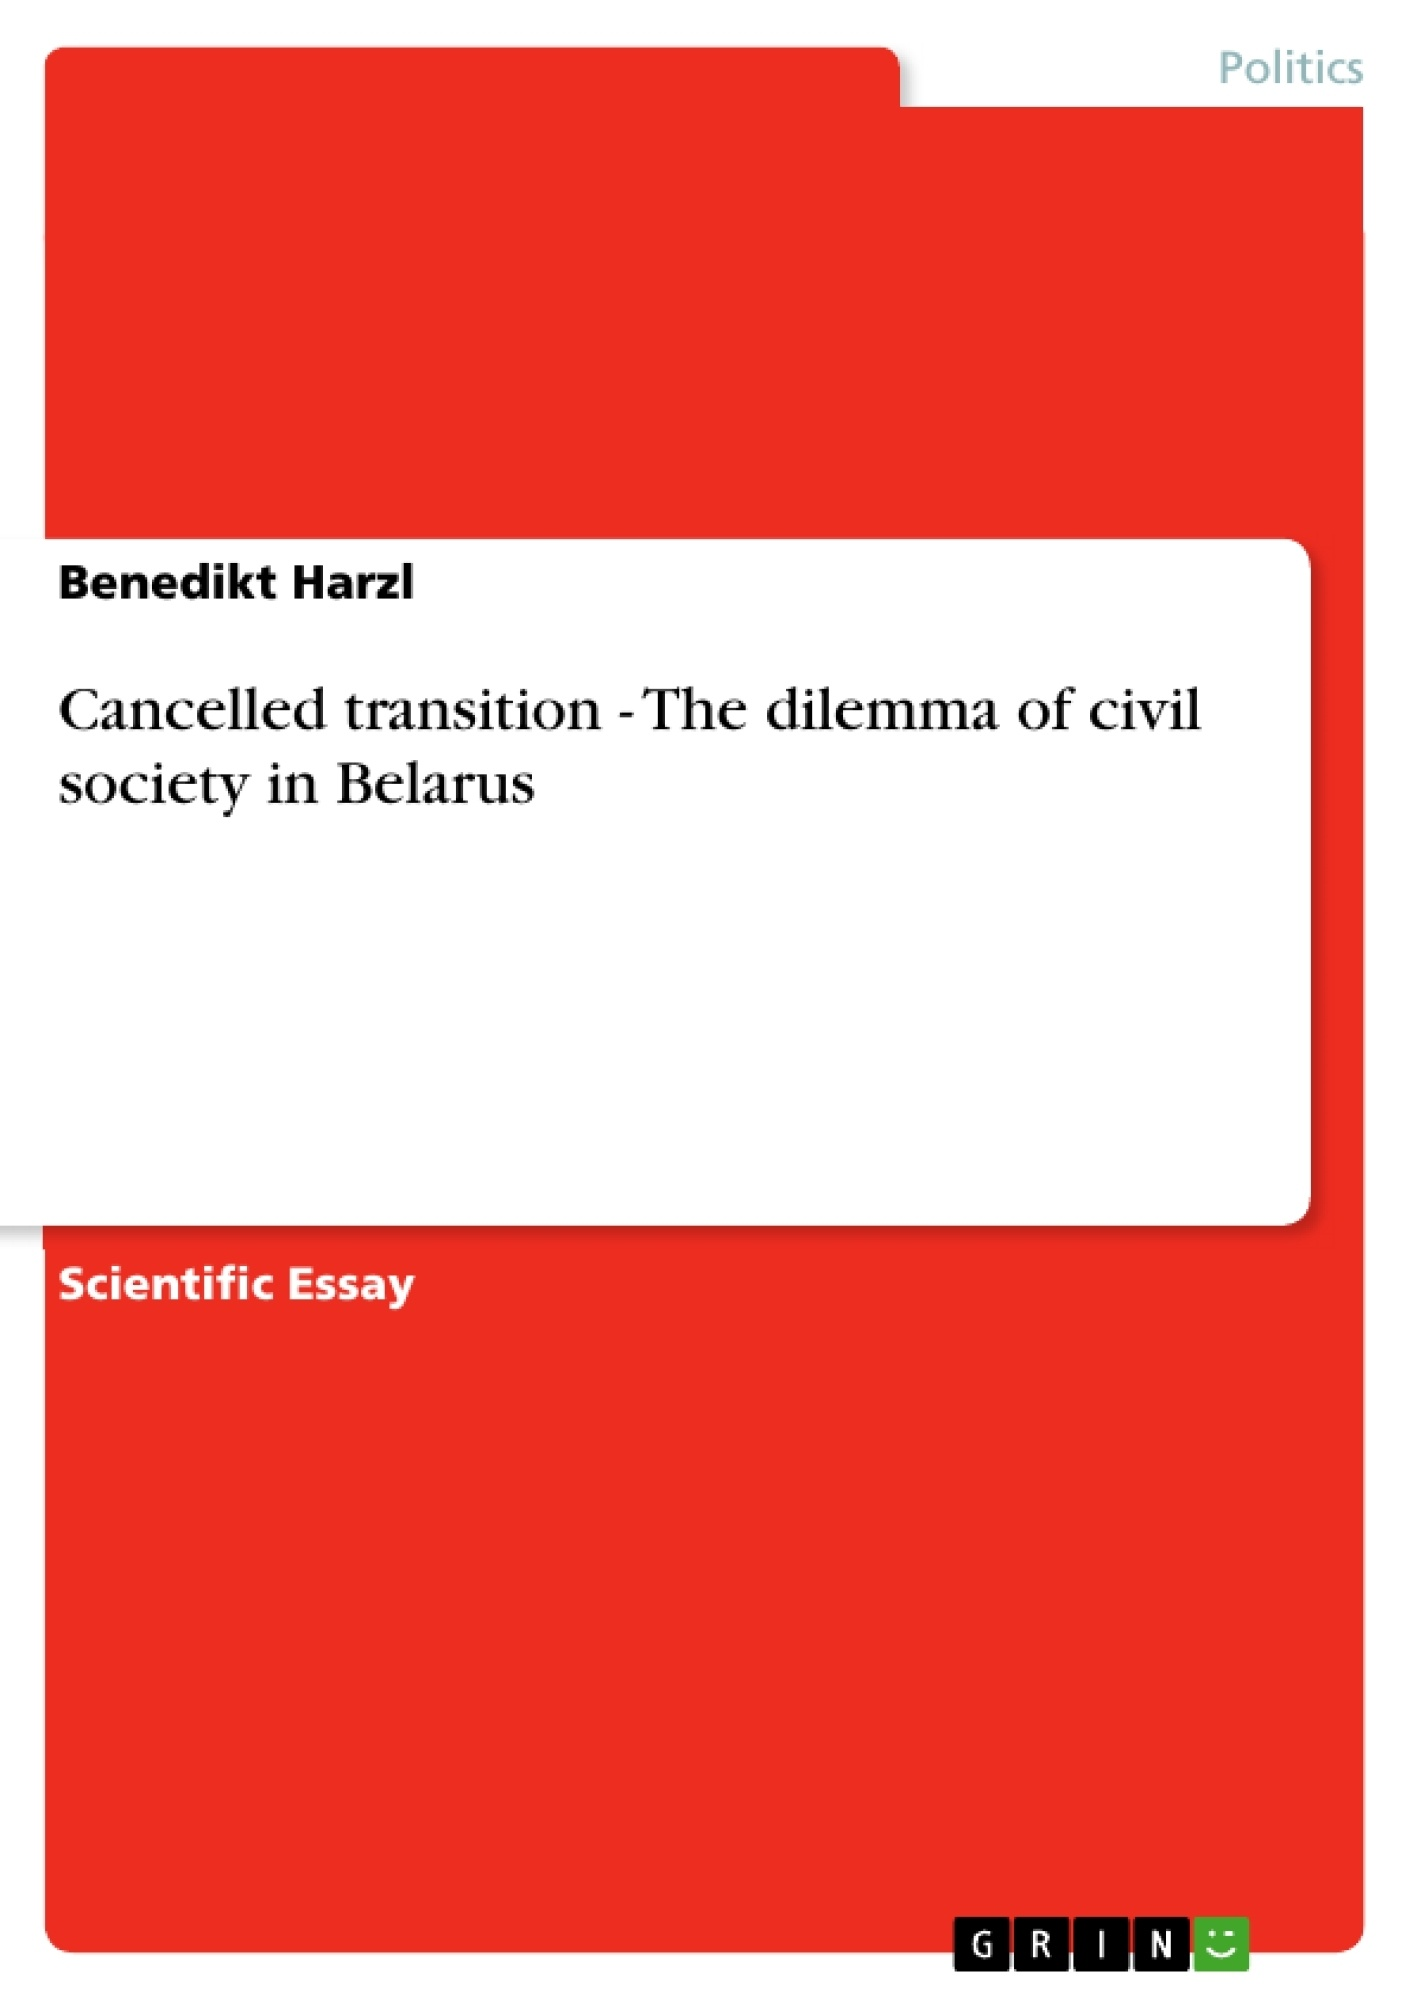 Title: Cancelled transition - The dilemma of civil society in Belarus